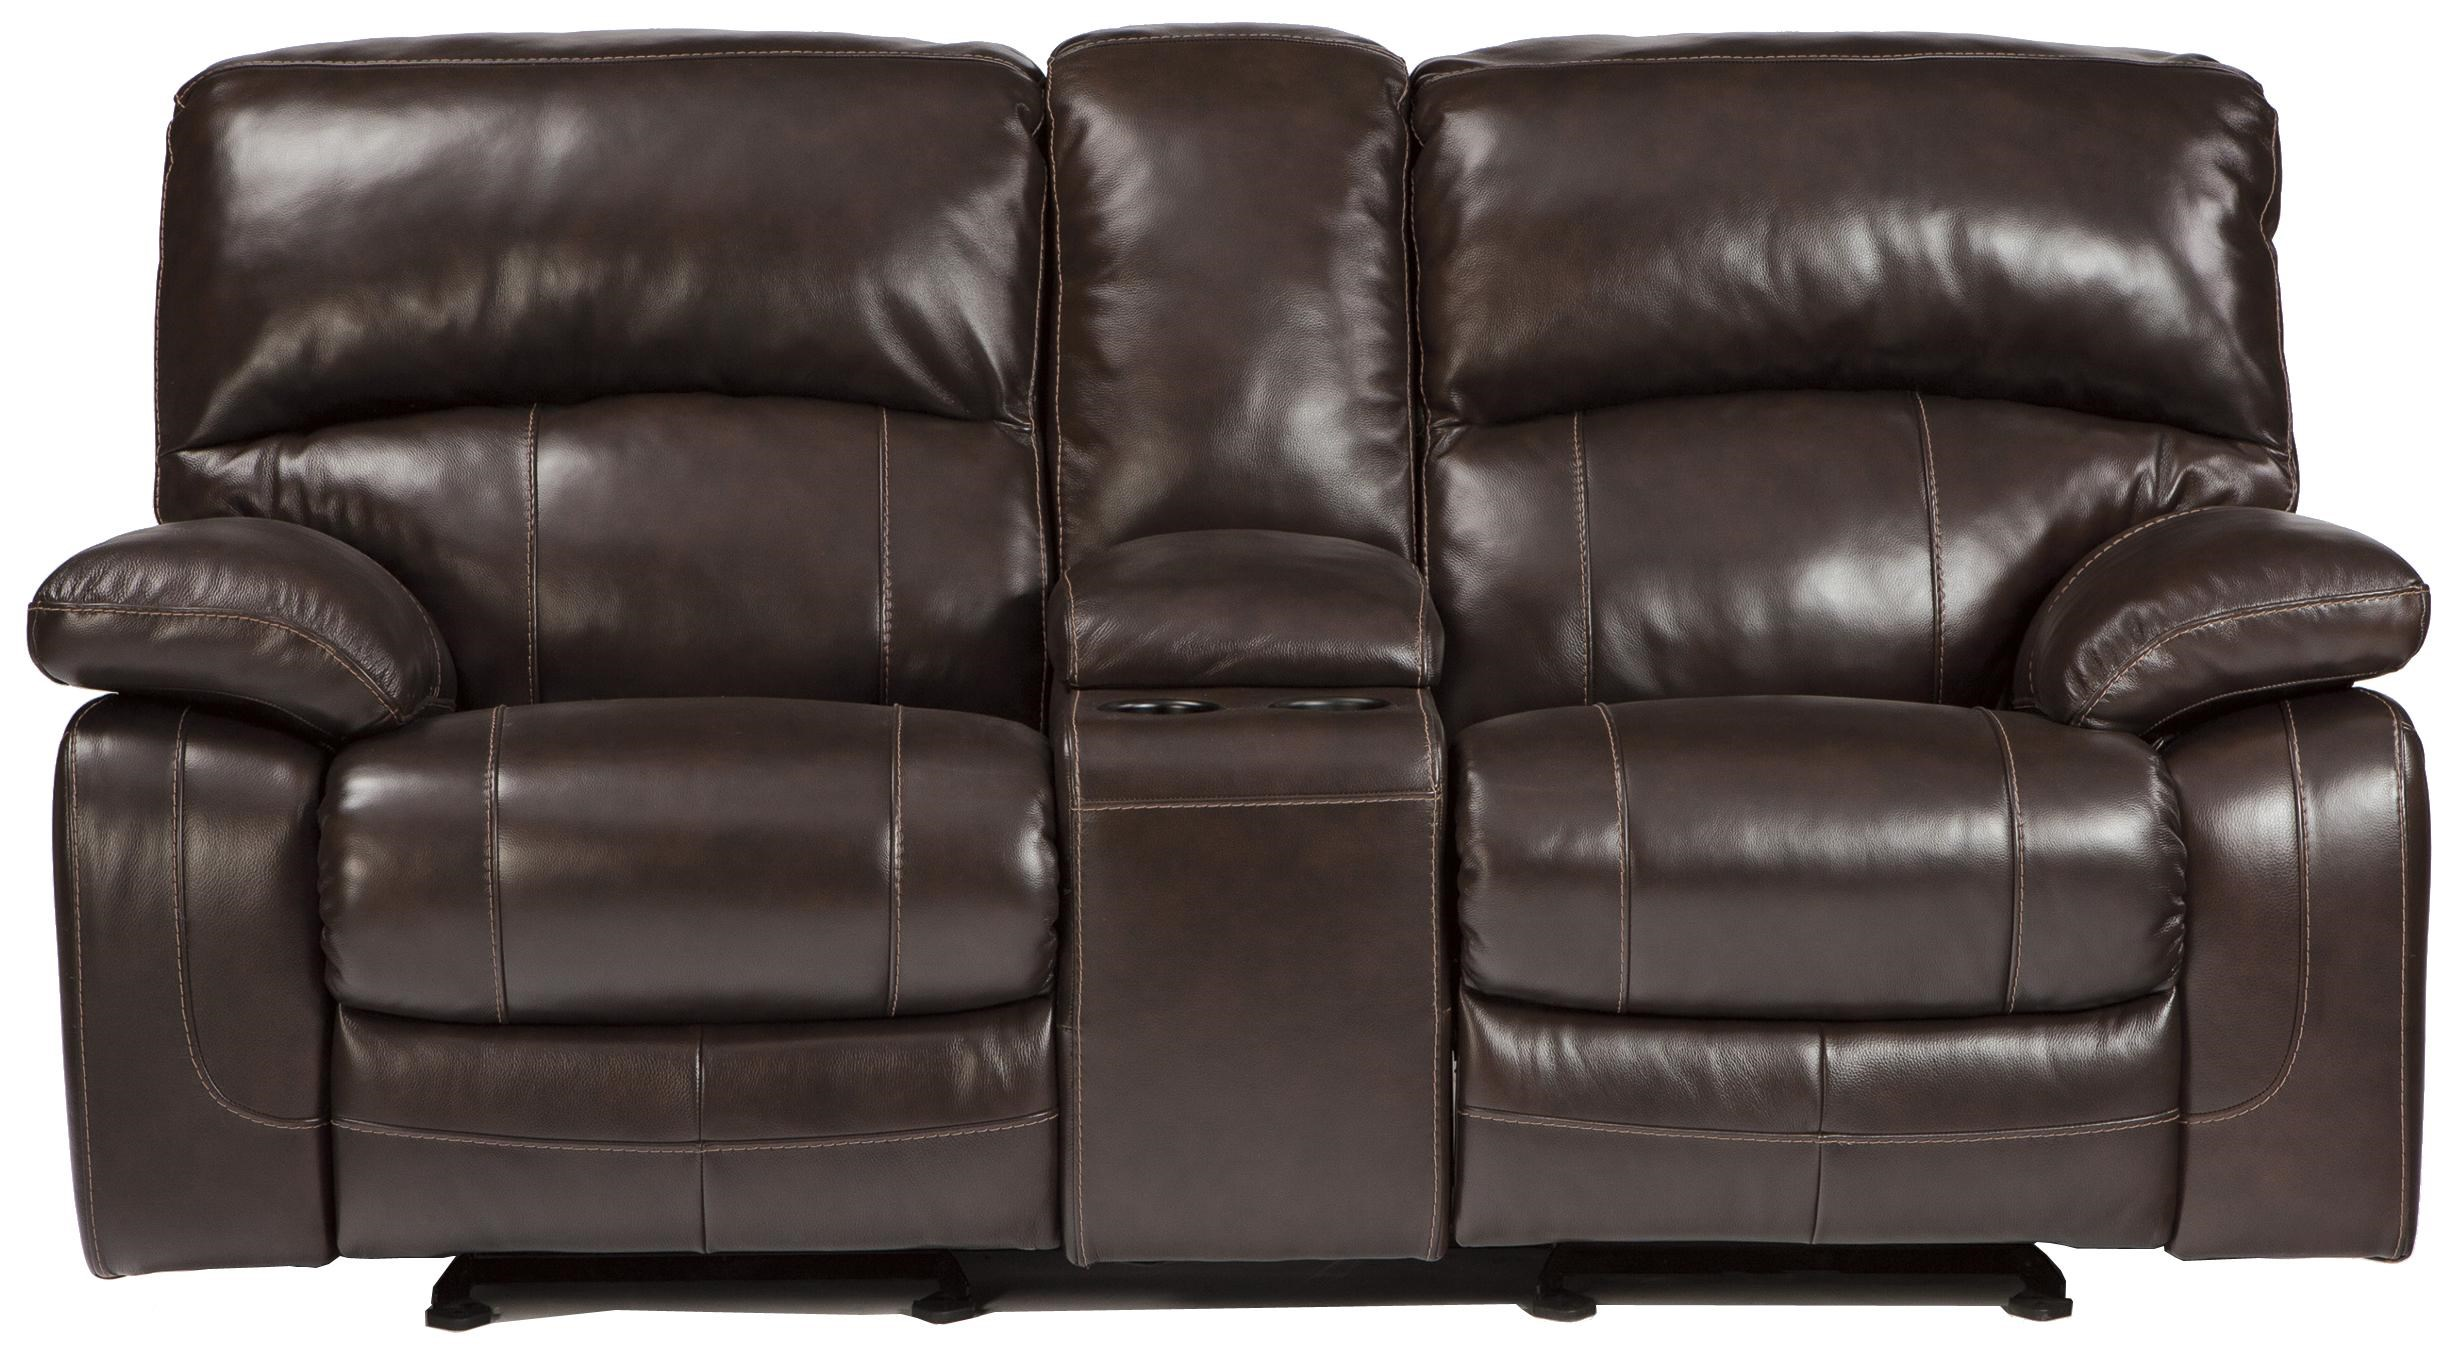 Signature Design by Ashley Damacio - Dark Brown Leather Match Glider Recliner Loveseat w/ Console - Royal Furniture - Reclining Love Seats  sc 1 st  Royal Furniture & Signature Design by Ashley Damacio - Dark Brown Leather Match ... islam-shia.org